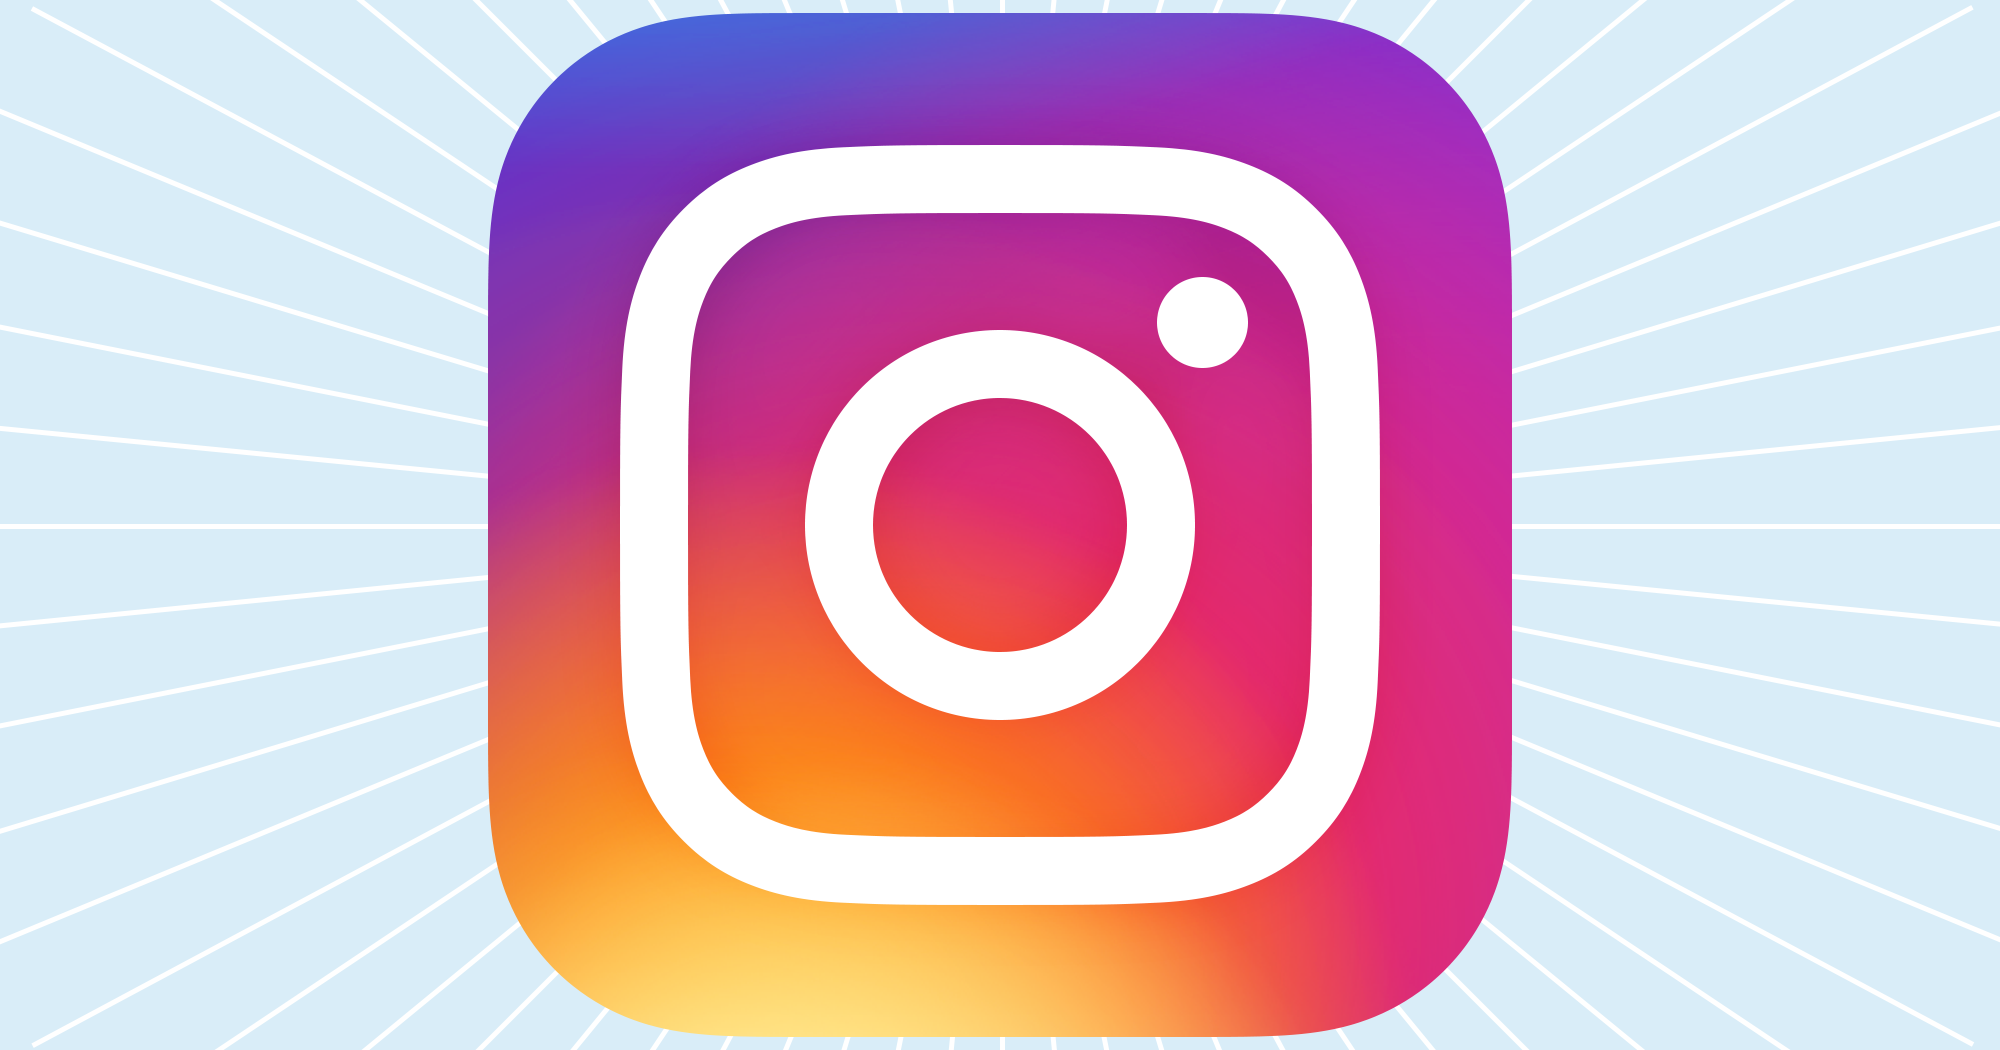 How to add text to instagram photos 2020